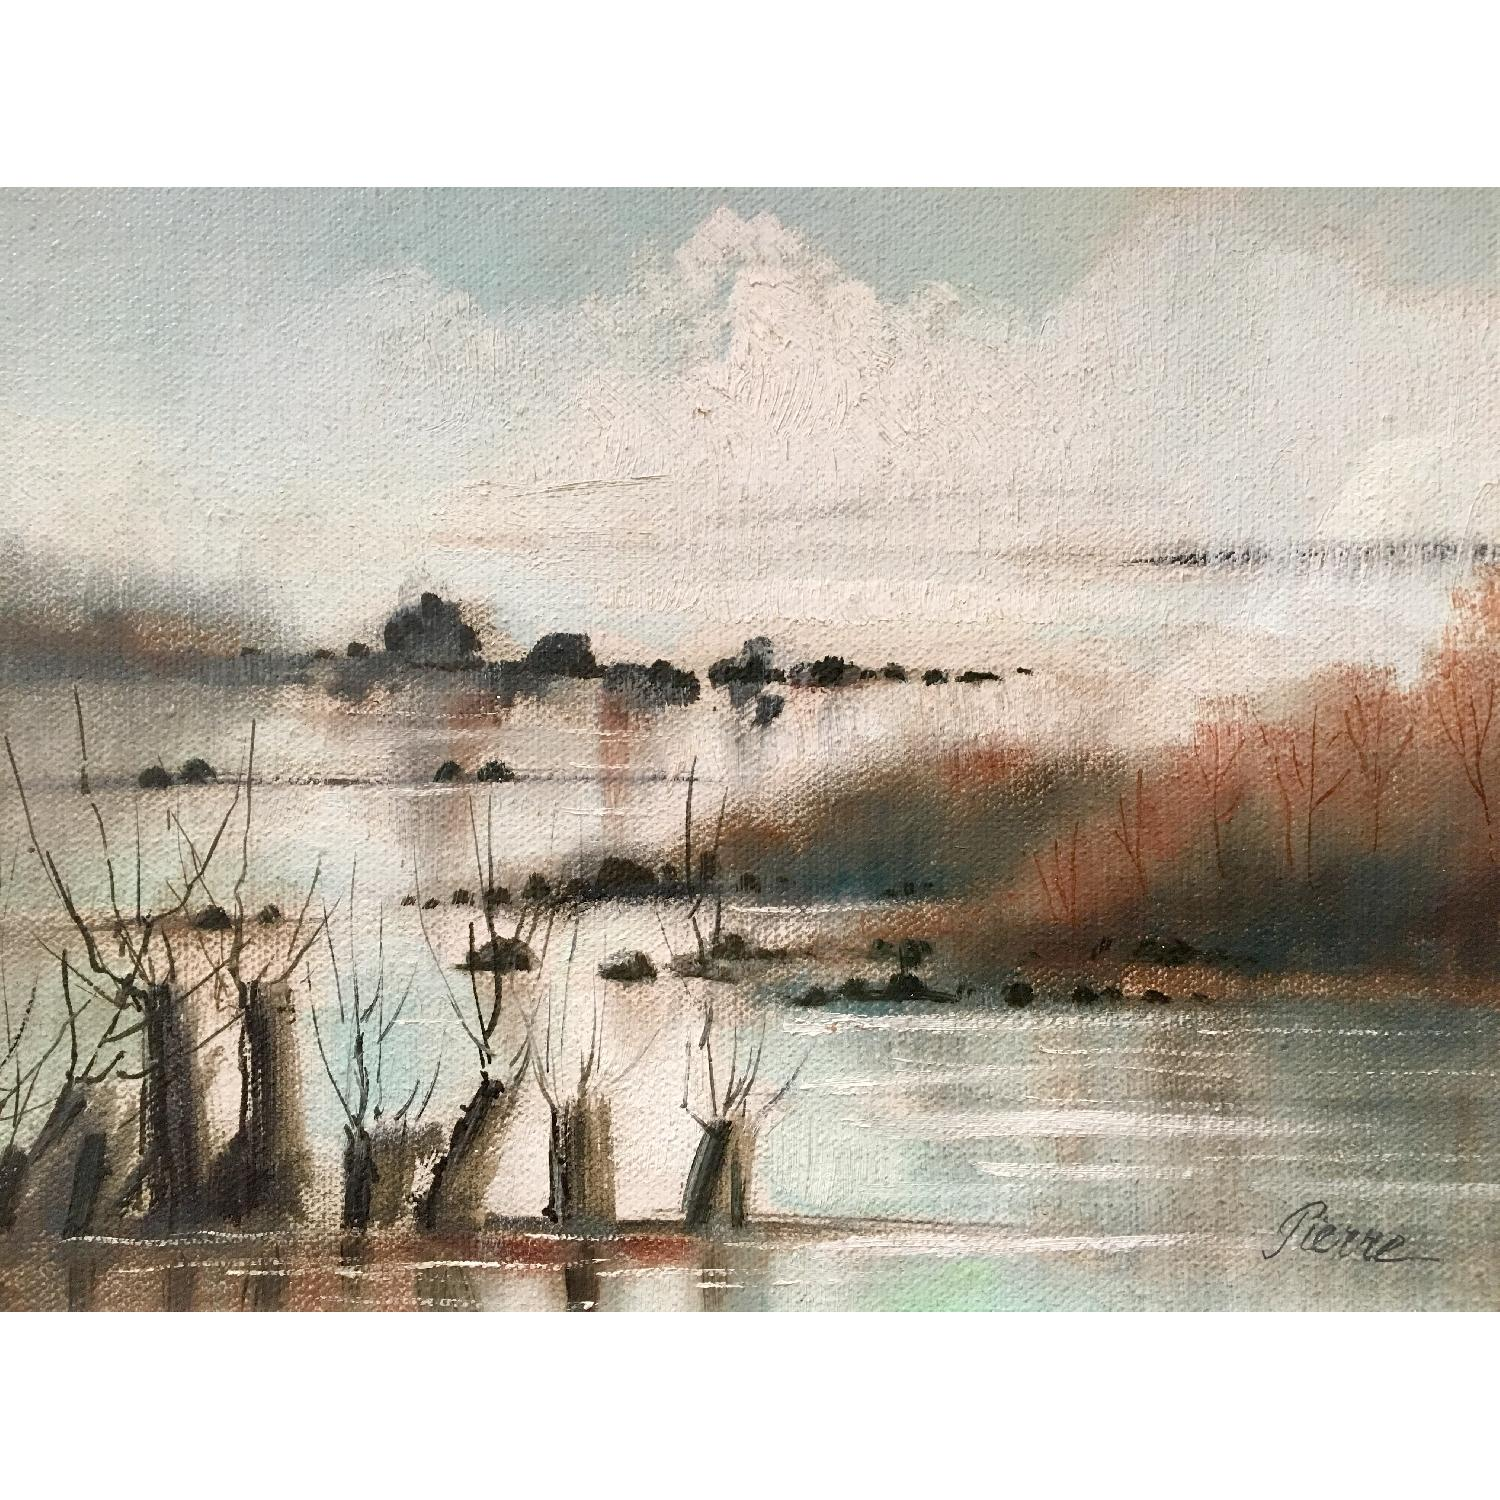 Vintage Dreamy Beach Waterscape Painting - image-2